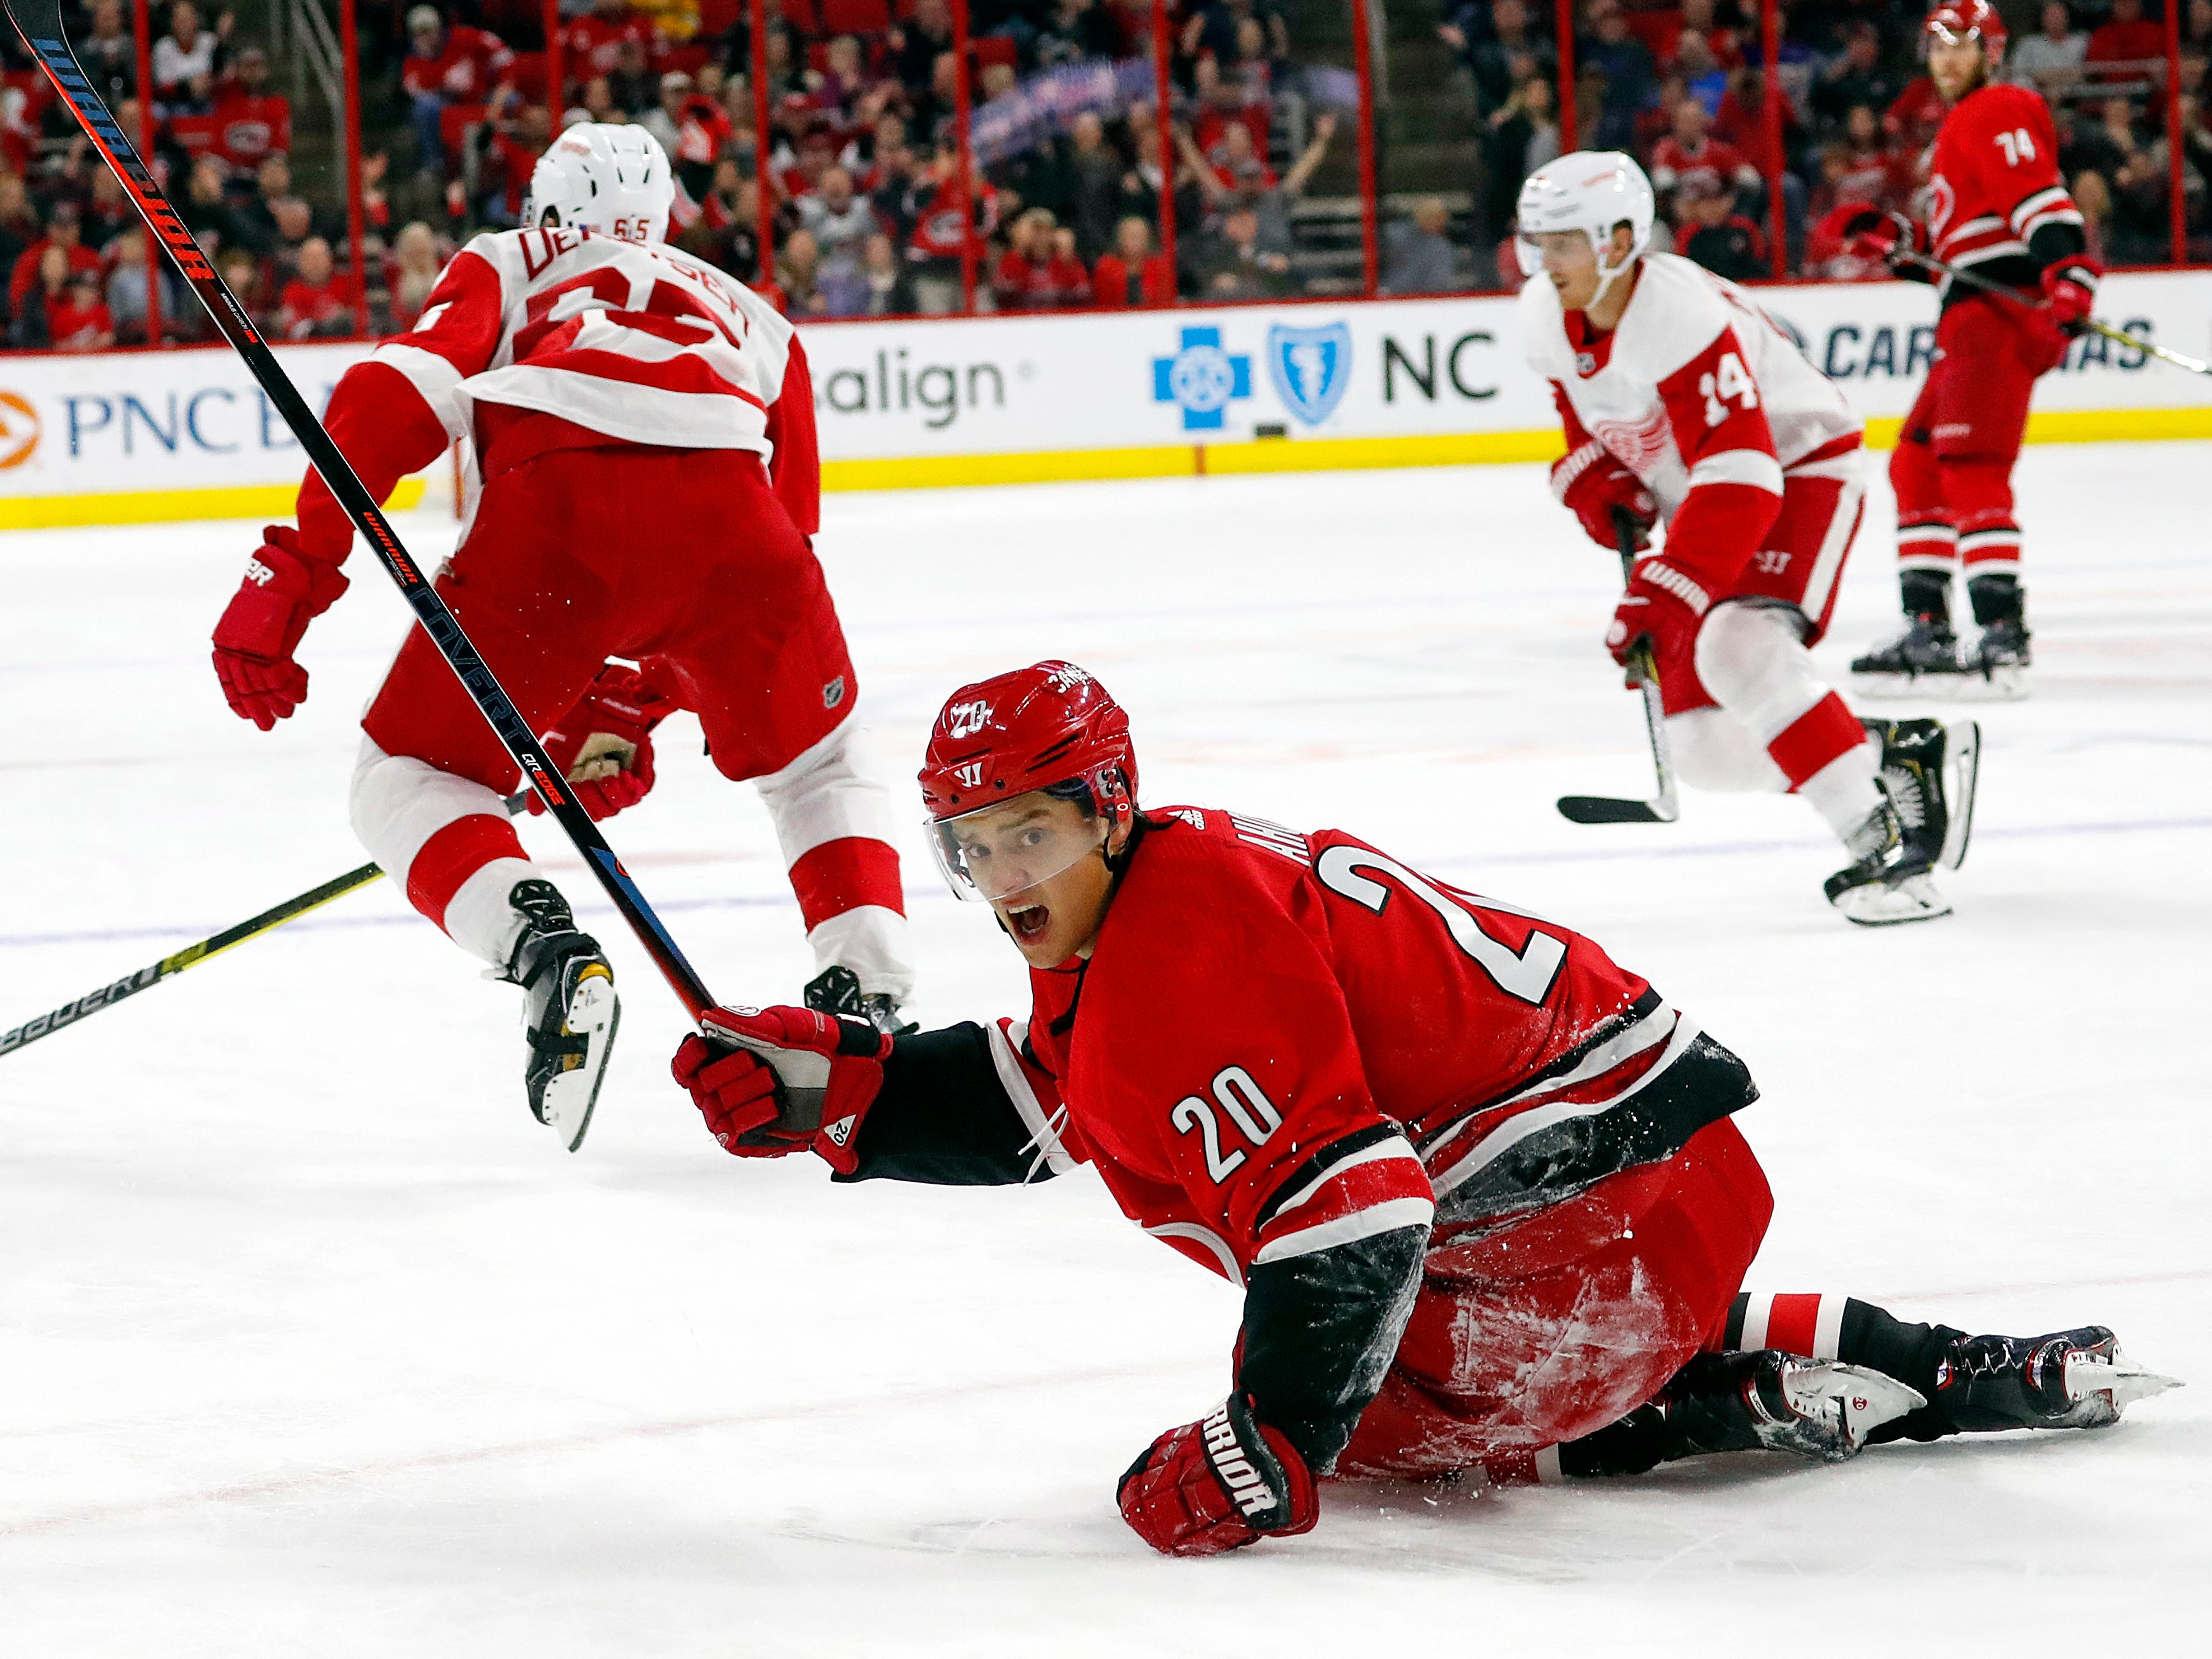 Carolina Hurricanes' Sebastian Aho (20) looks toward an official after being tripped by Detroit Red Wings' Danny DeKeyser (65) during overtime.